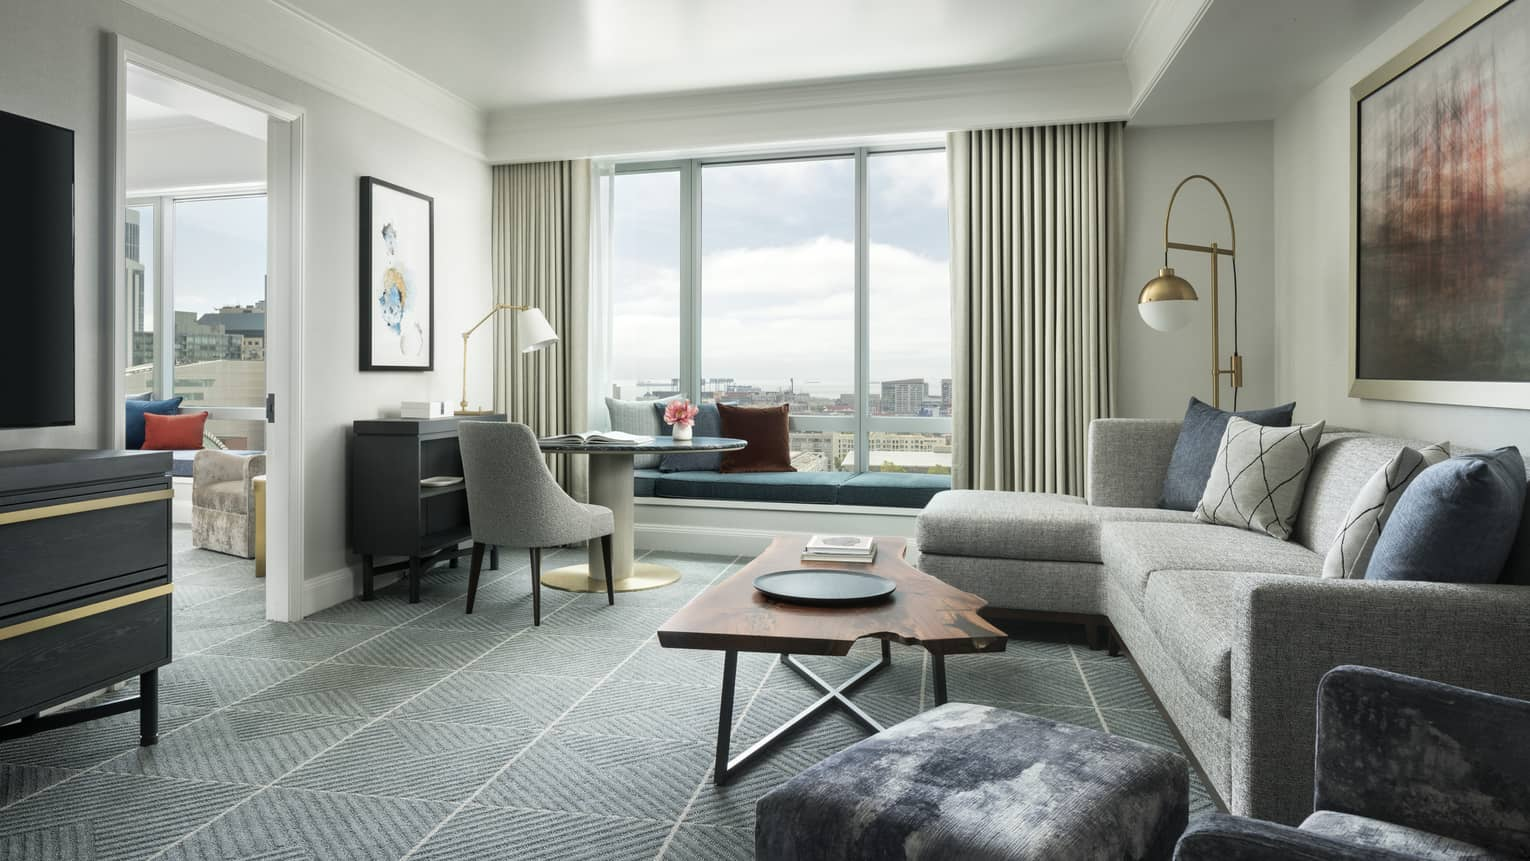 Hotel suite separate living room with retro-style L-shaped grey sofa and desk chair, live-edge wood coffee table